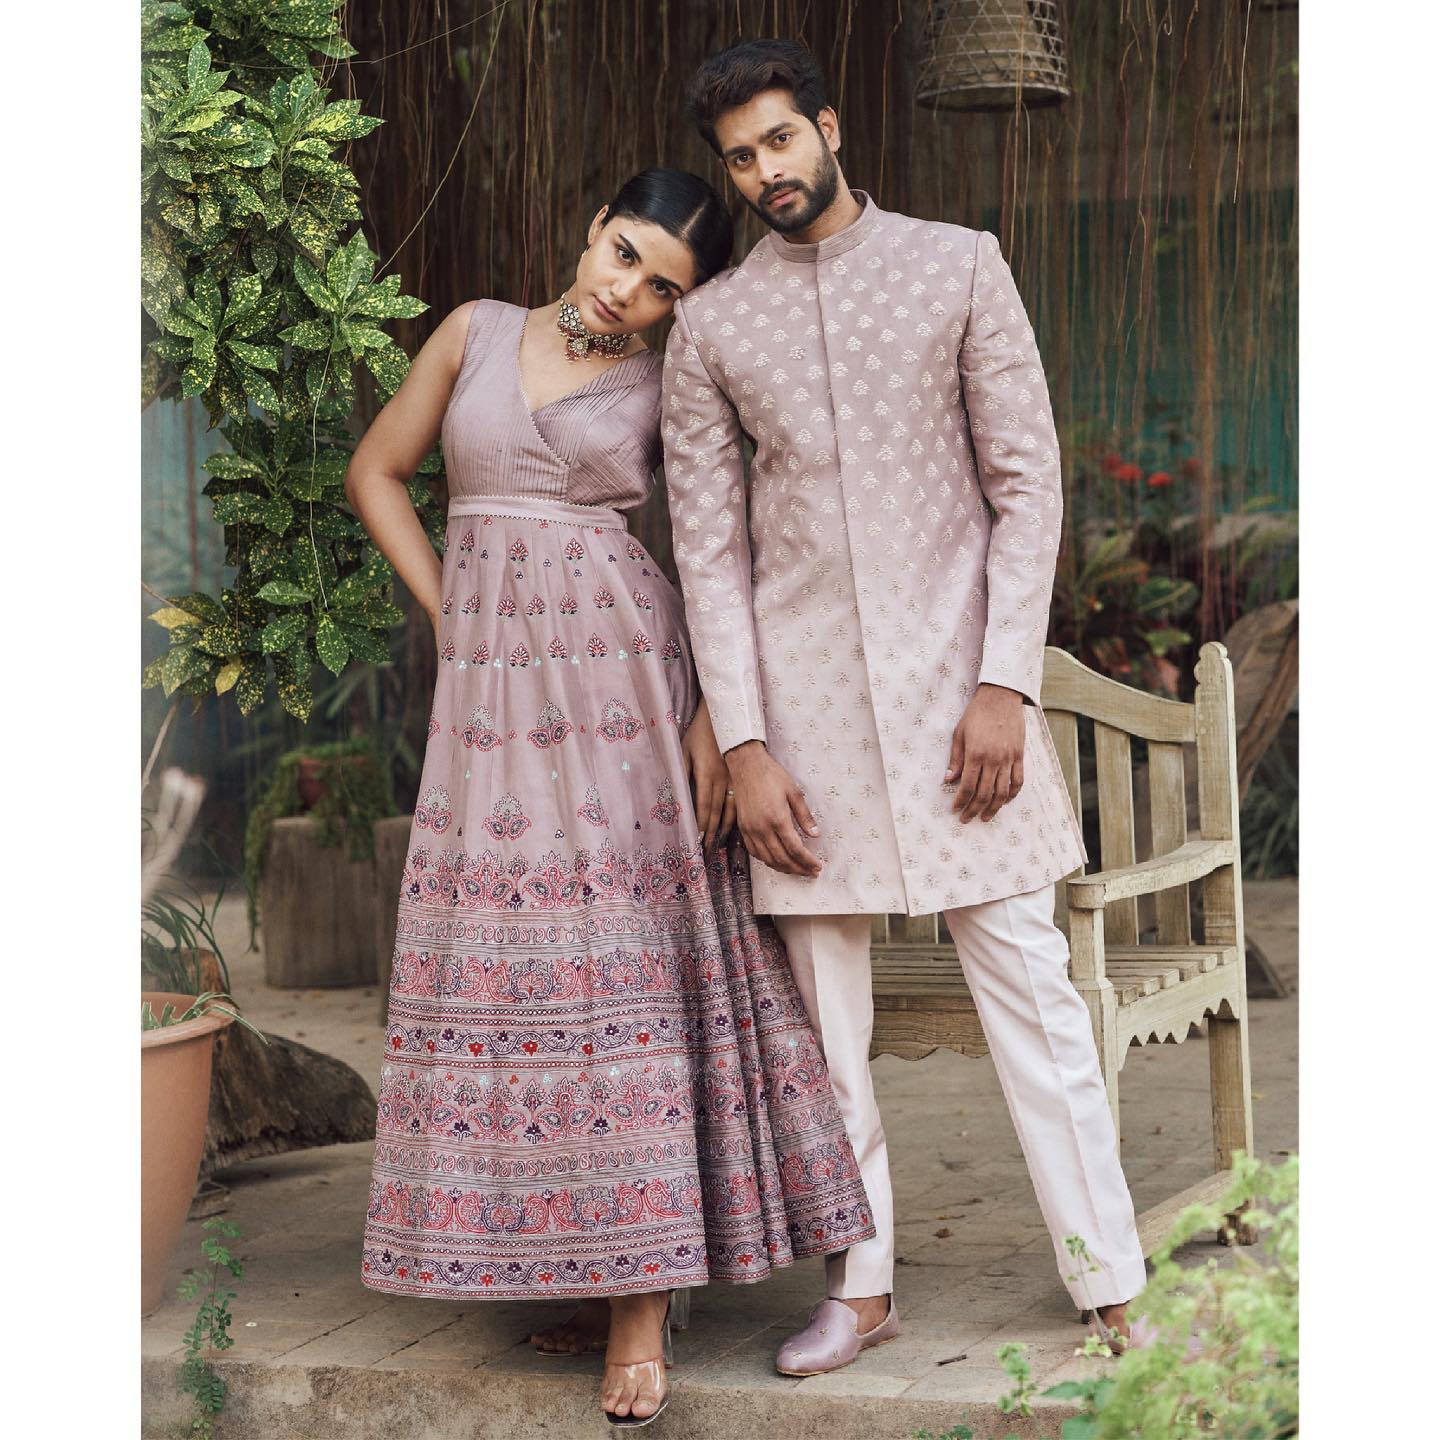 Phulwari . Raj seen in maple rose pink sherwani with all over self thread work buttis and a hint of silver detail to add to the richness of the look. Harshita seen in aari work gown with a pop of colour and some mirror work embroidery.  To shop our new collection Phulwari  DM us or Whatsapp us on +91 6302 878 533 2021-05-28